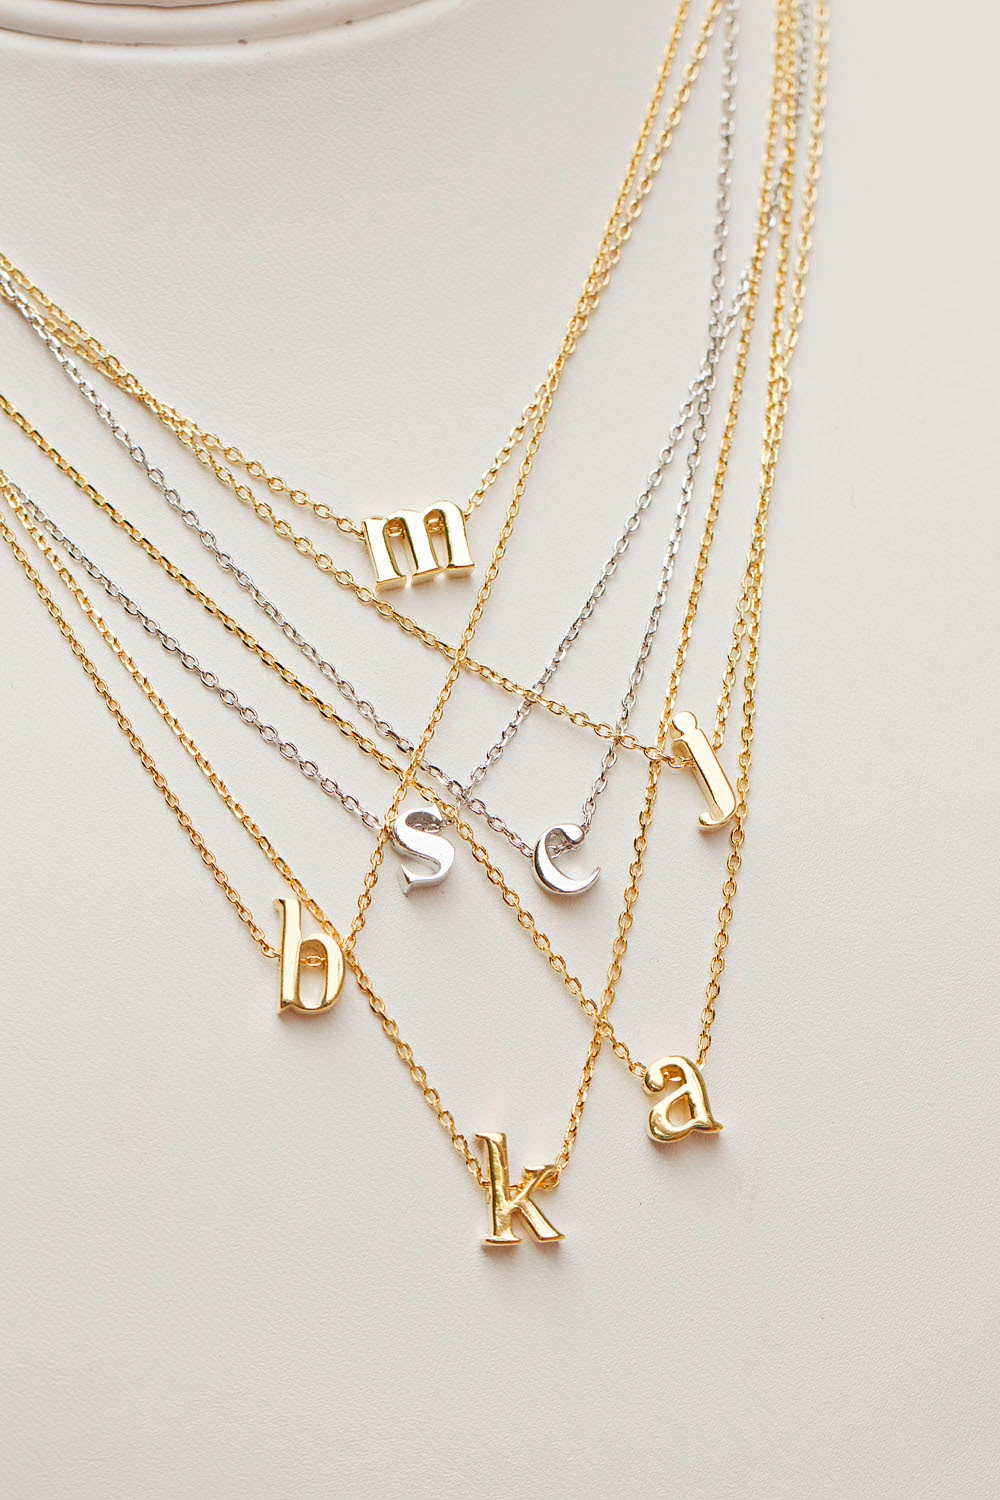 This Small Initial Necklace is sure to capture your heart, with its delicate and one-of-a-kind personalized design. Effortlessly made from your choice of sterling silver, gold, or rose gold, this mini initial pendant necklace is just what you've been looking for.